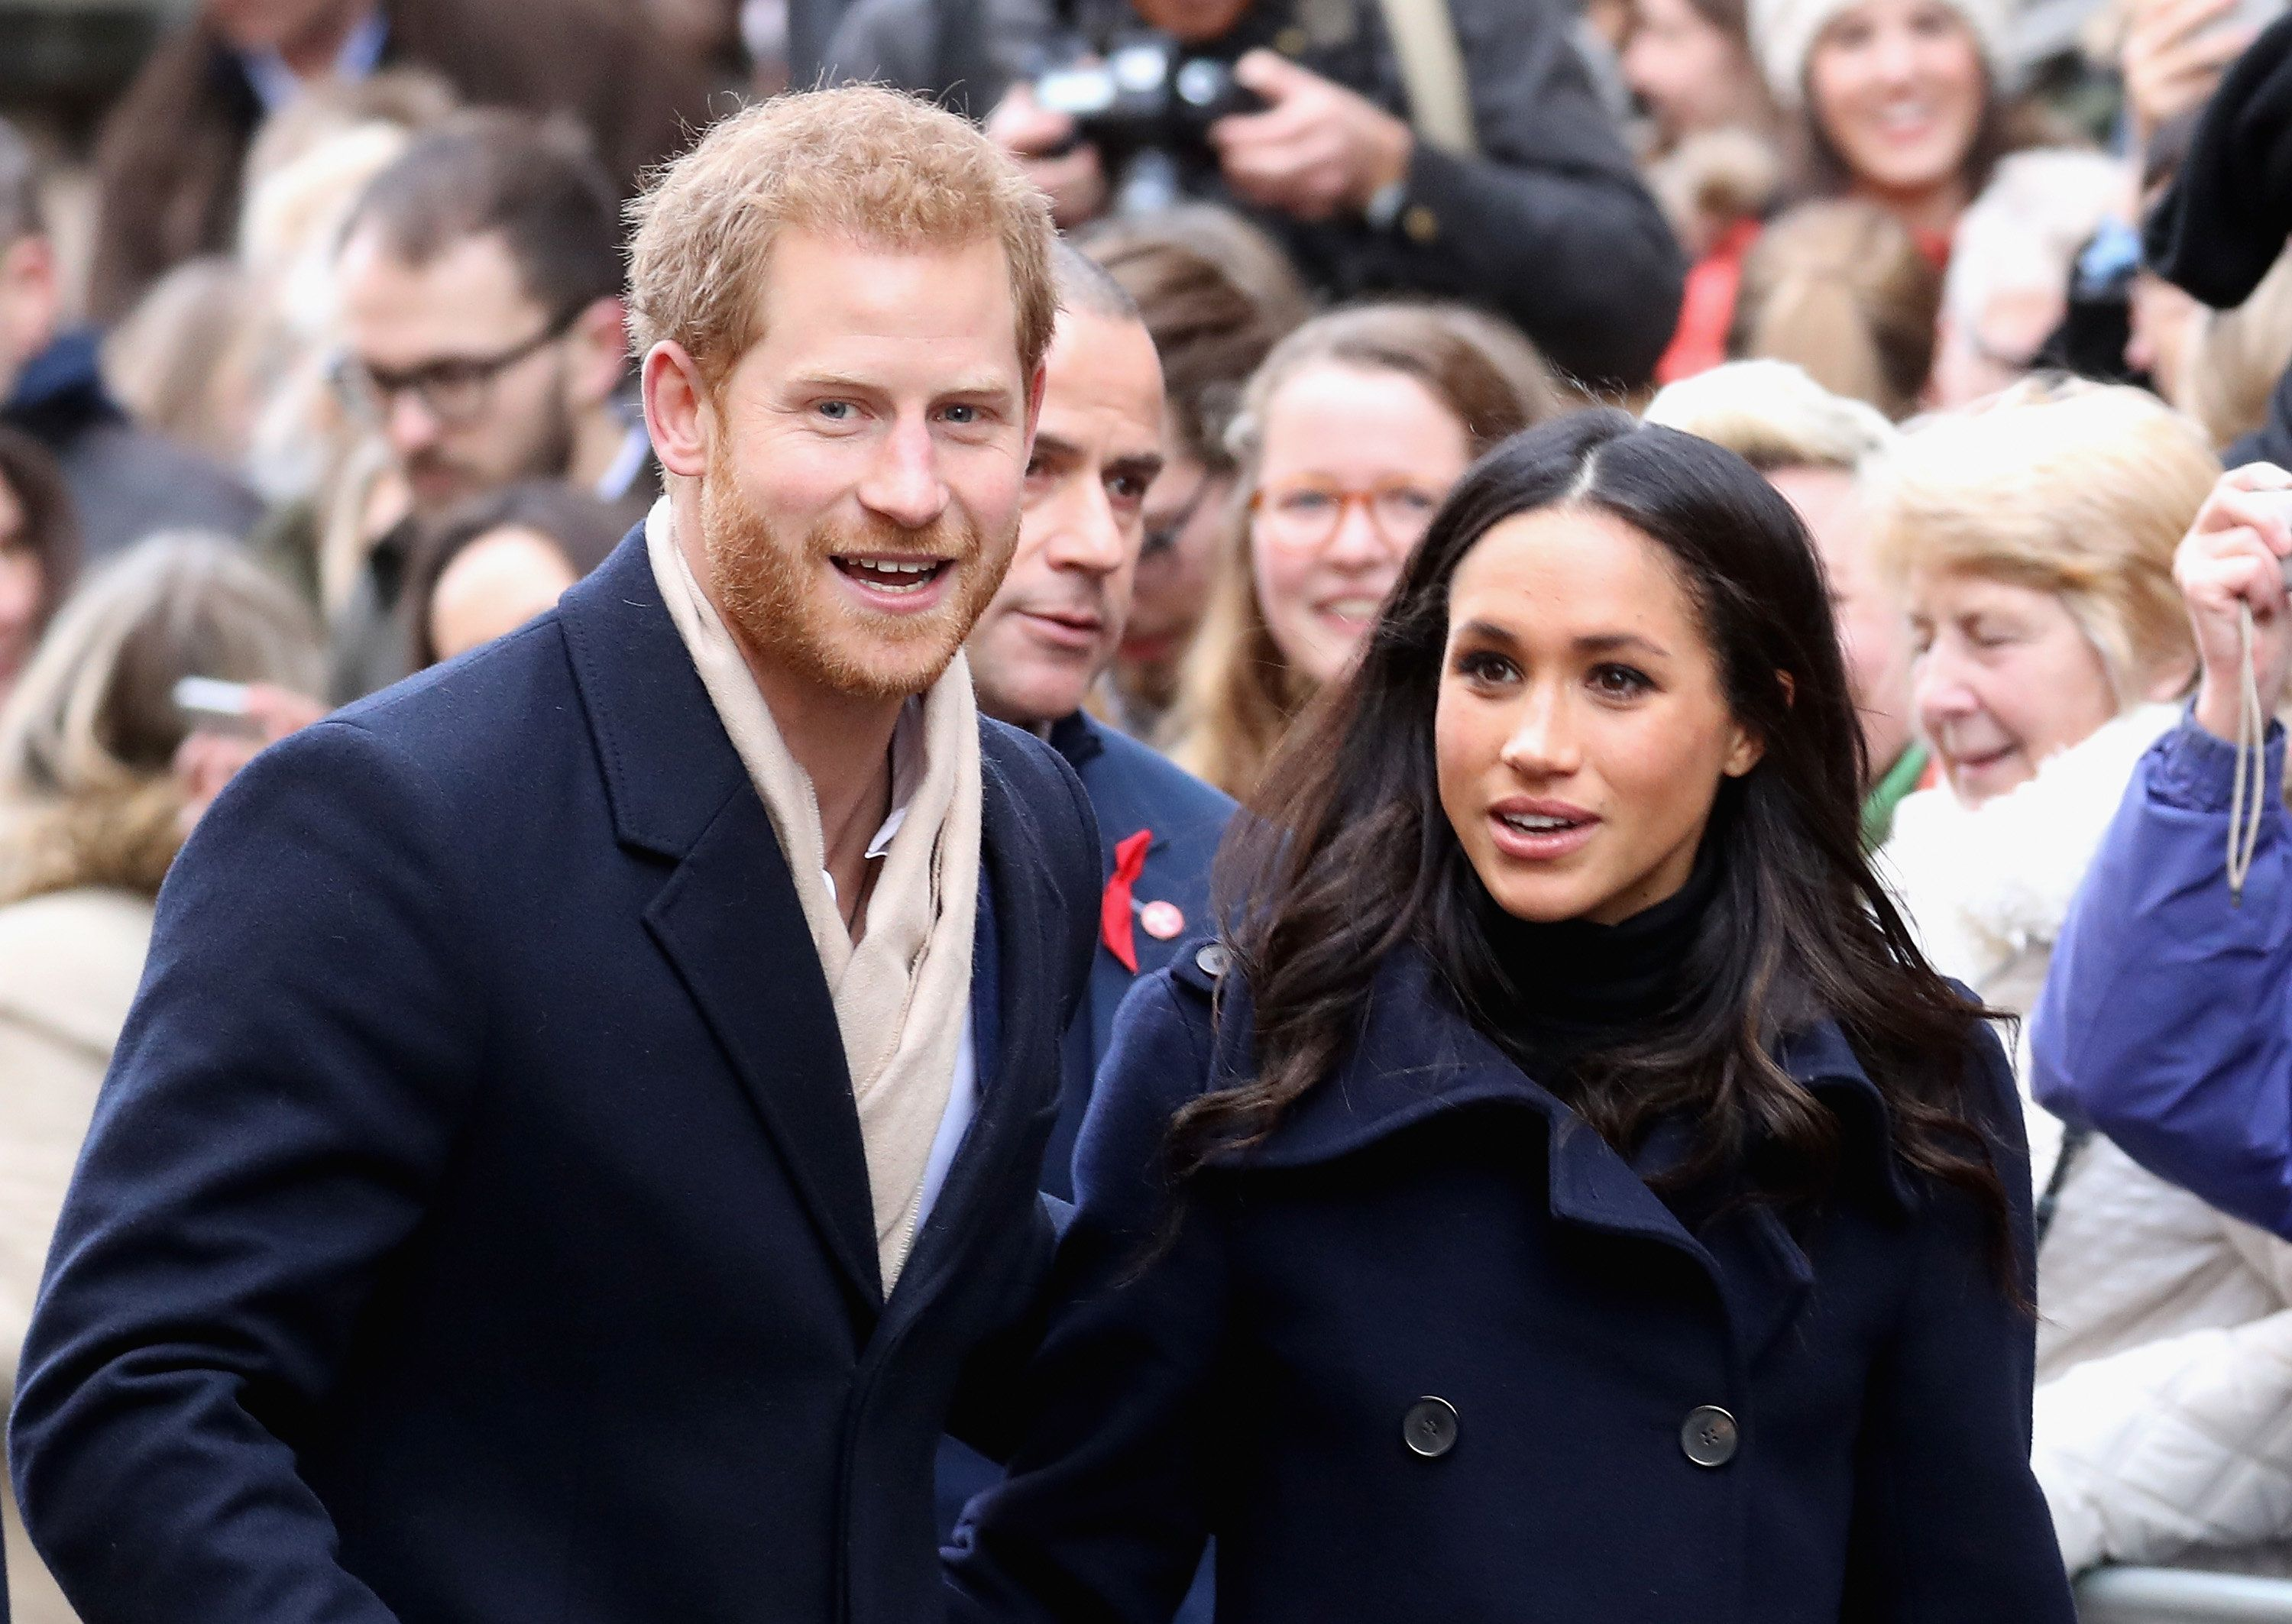 Princess apologizes after wearing brooch deemed 'racist' to lunch with Meghan Markle